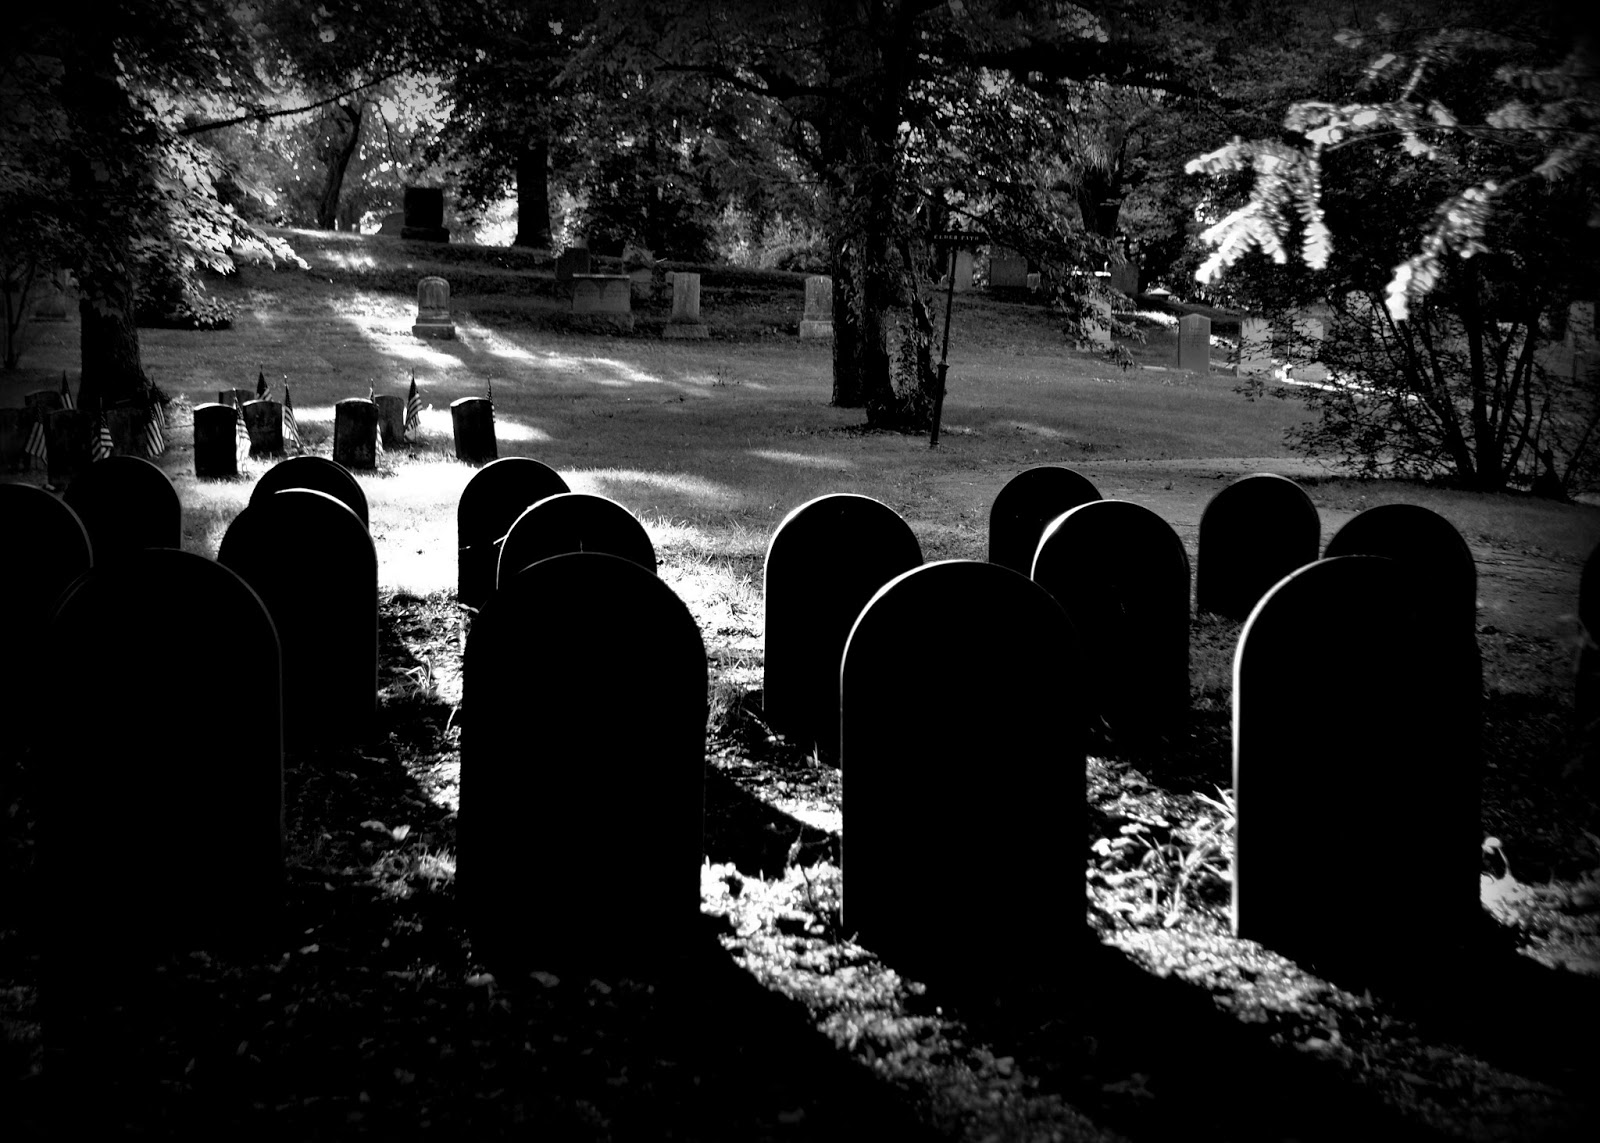 shadow, headstone, black and white photography, cemetery